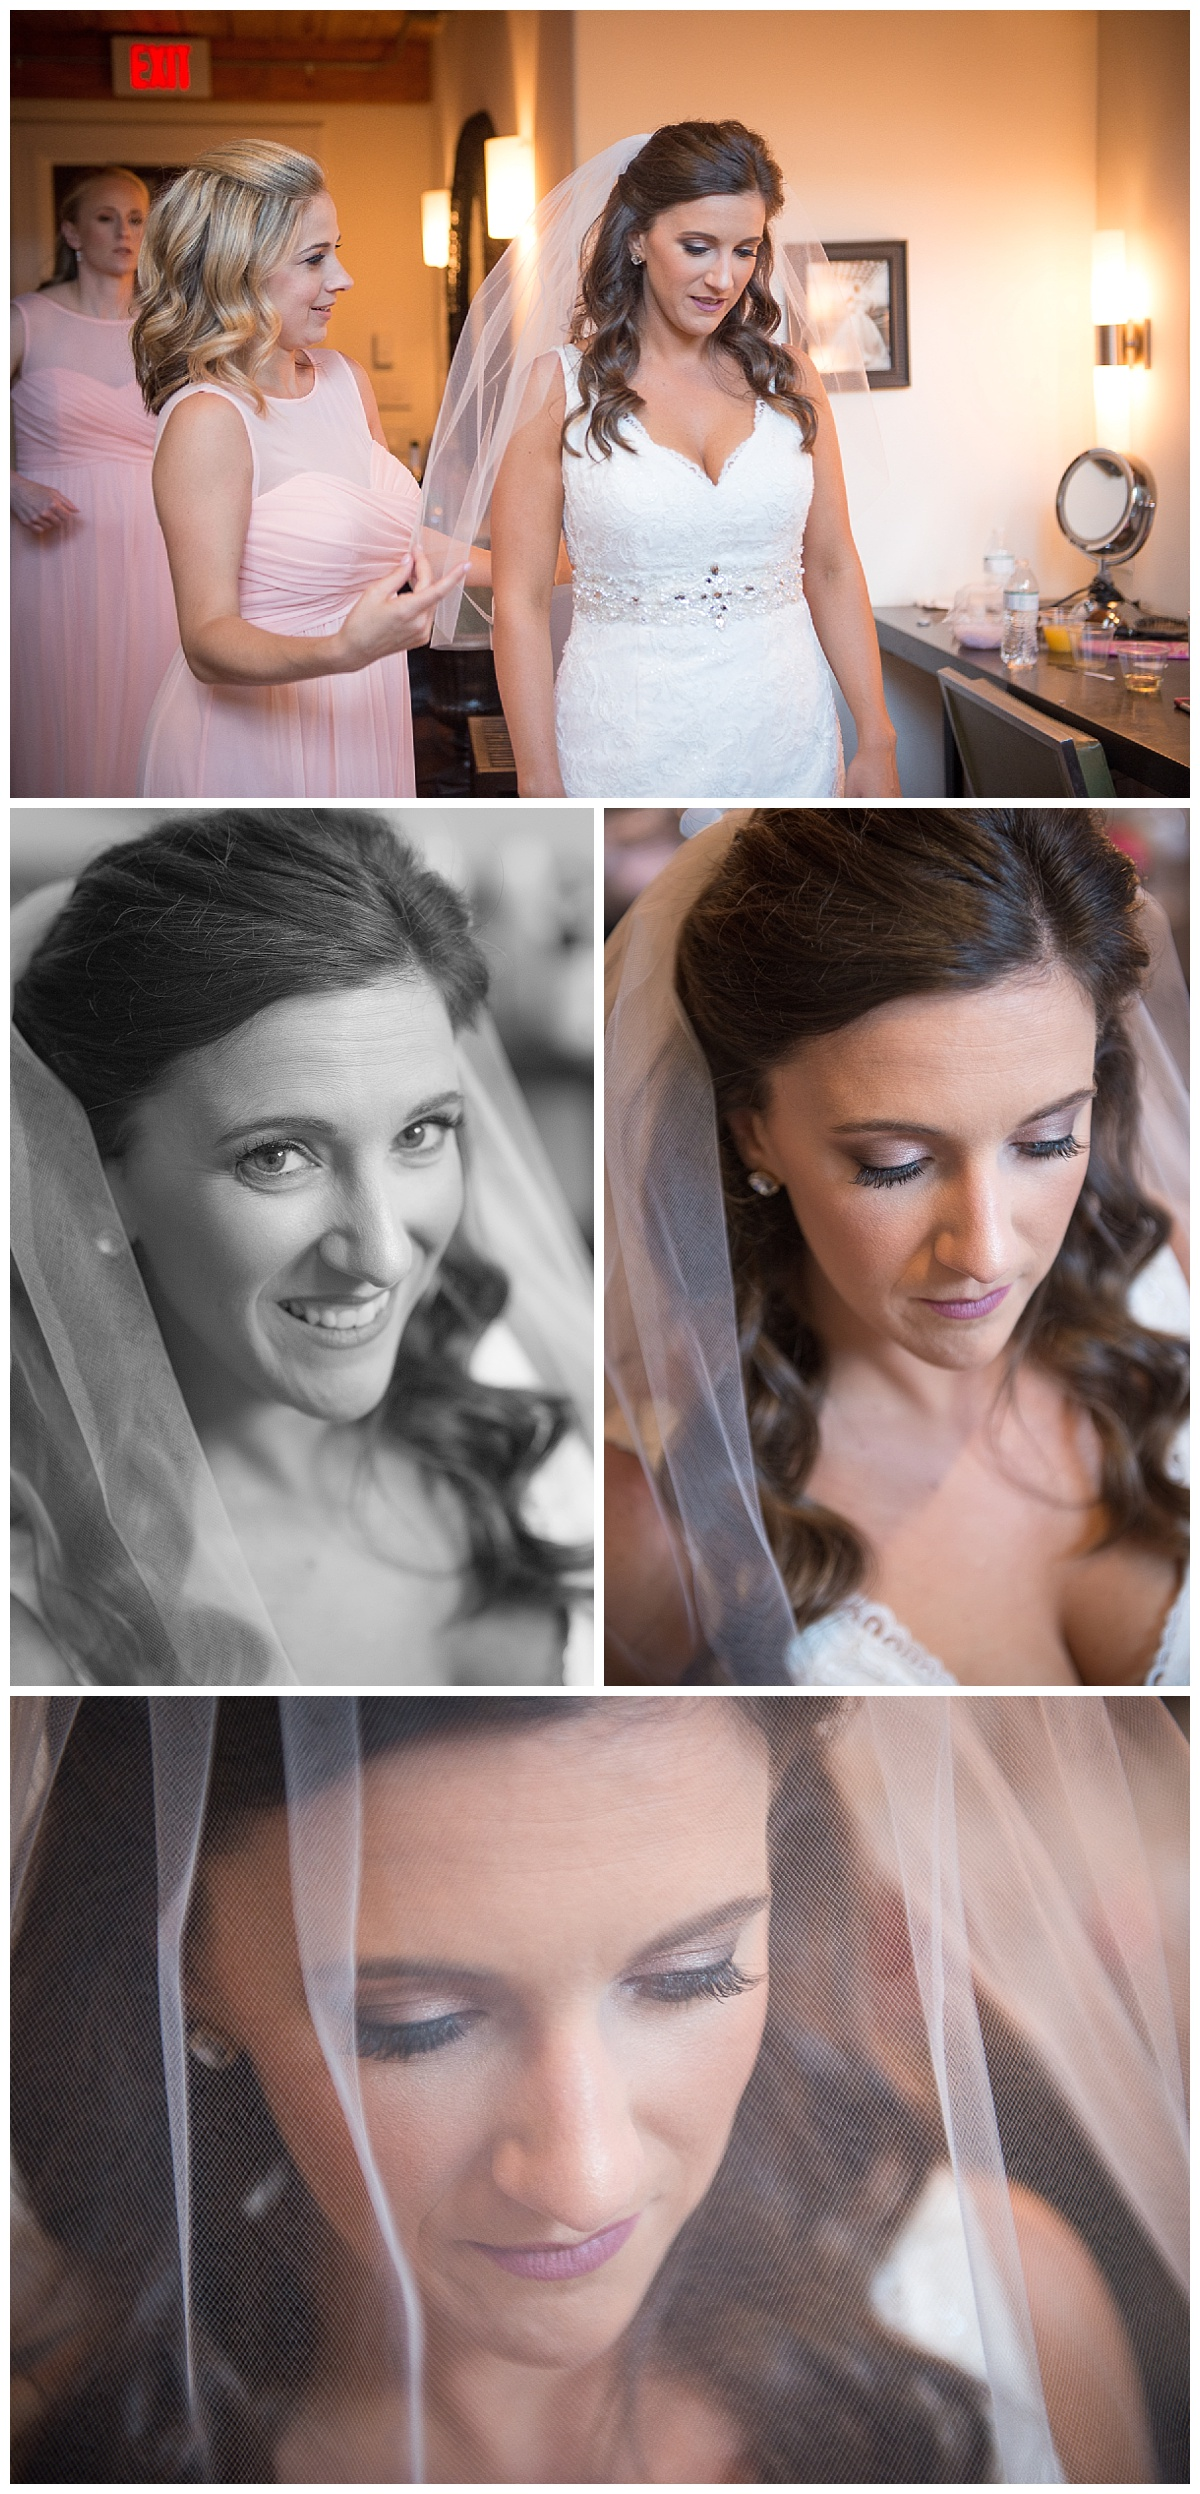 Bride final touches with veil